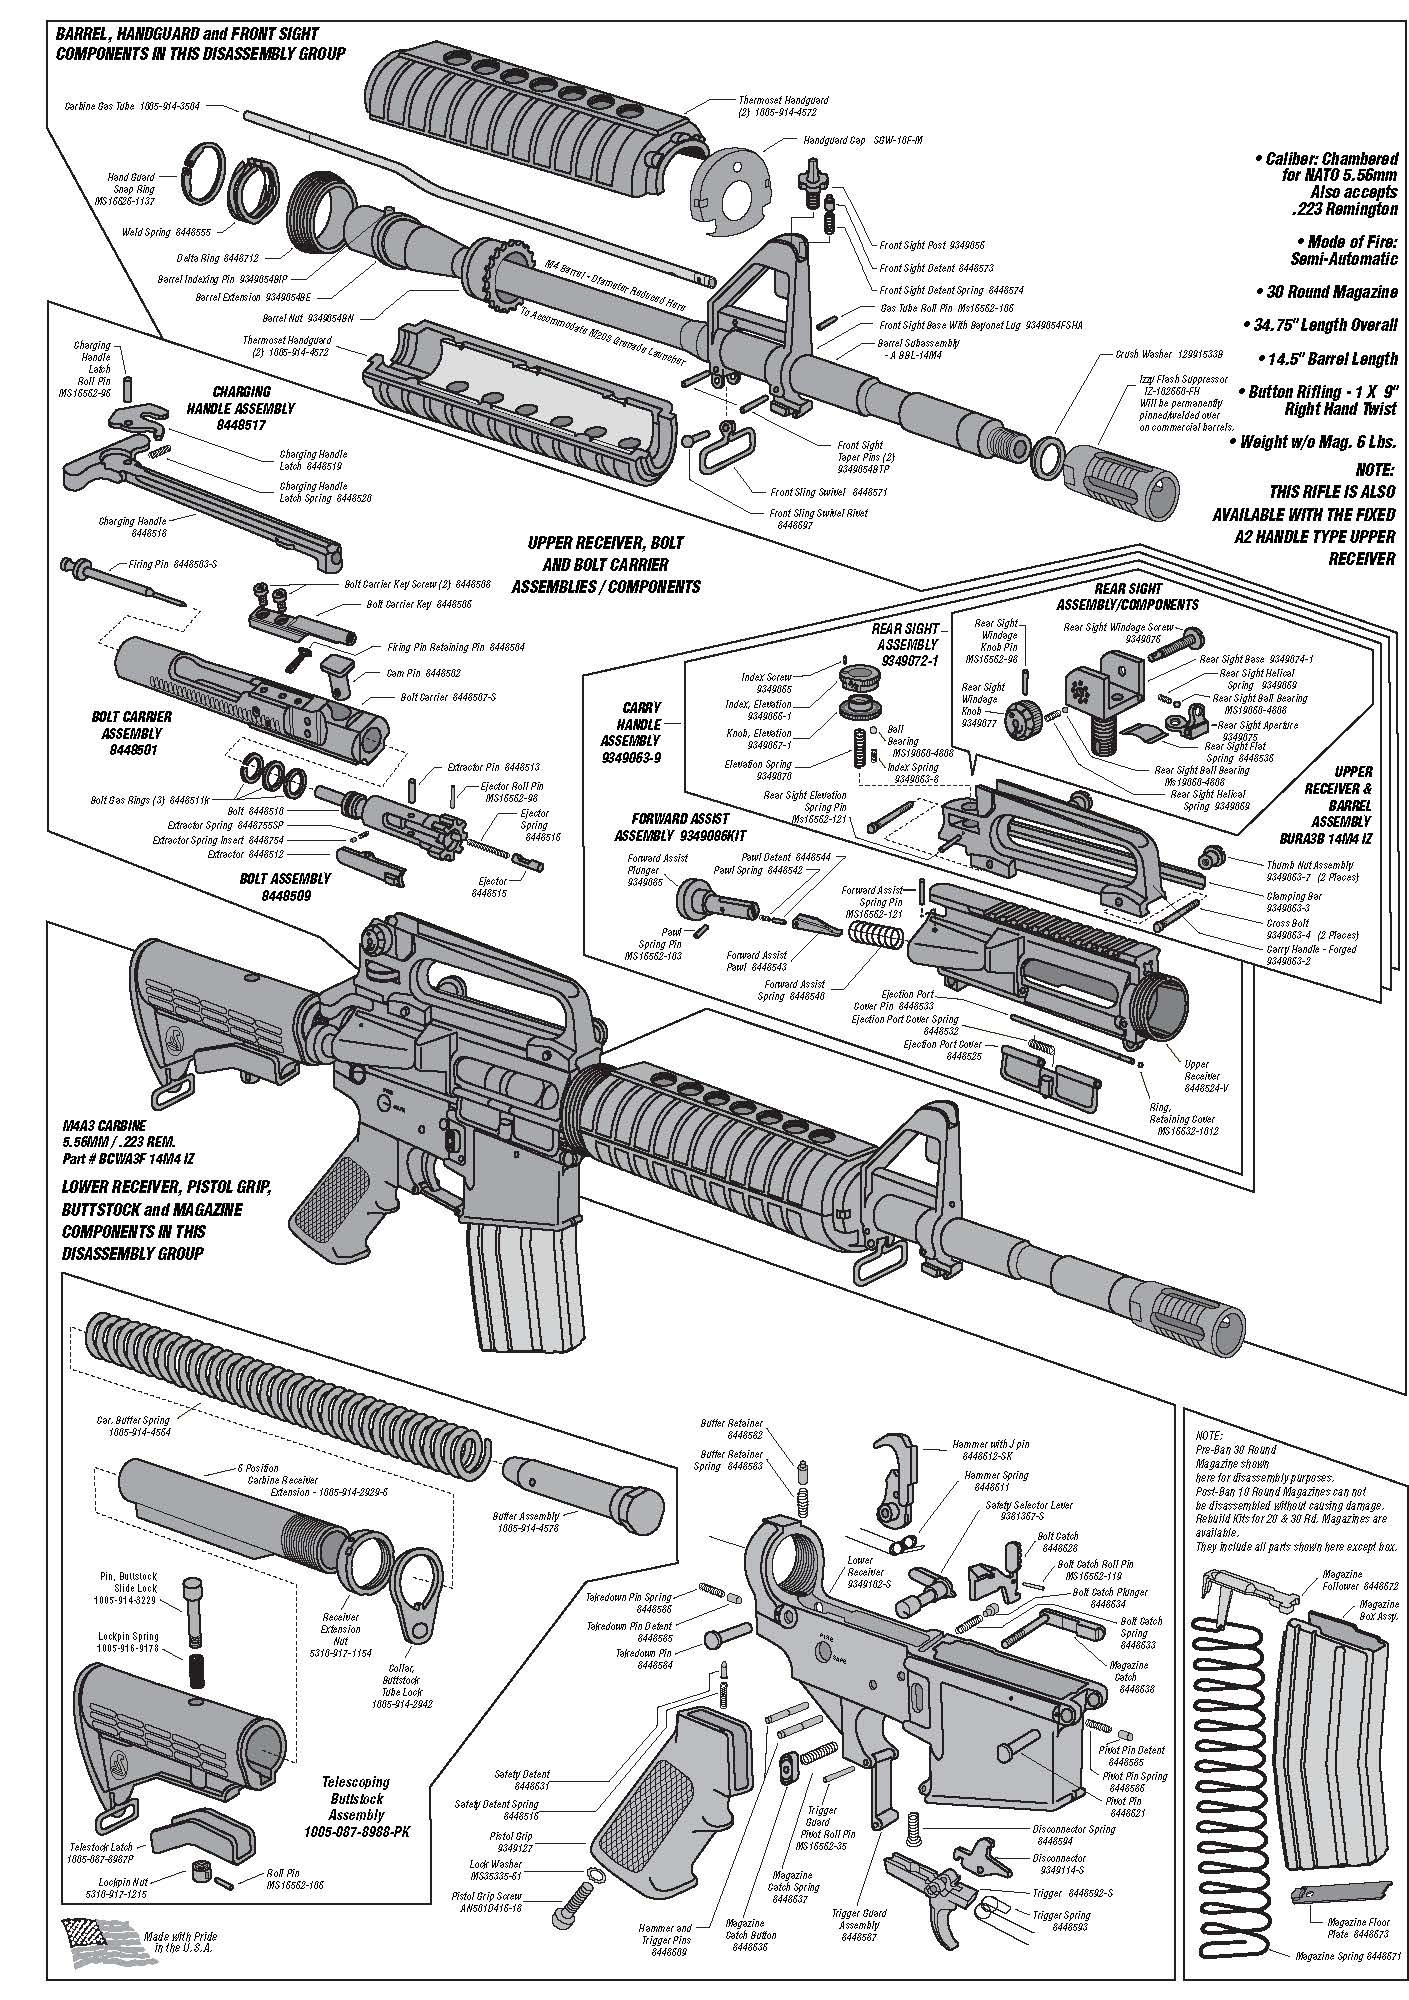 Pin On Technical Drawings Cutaways